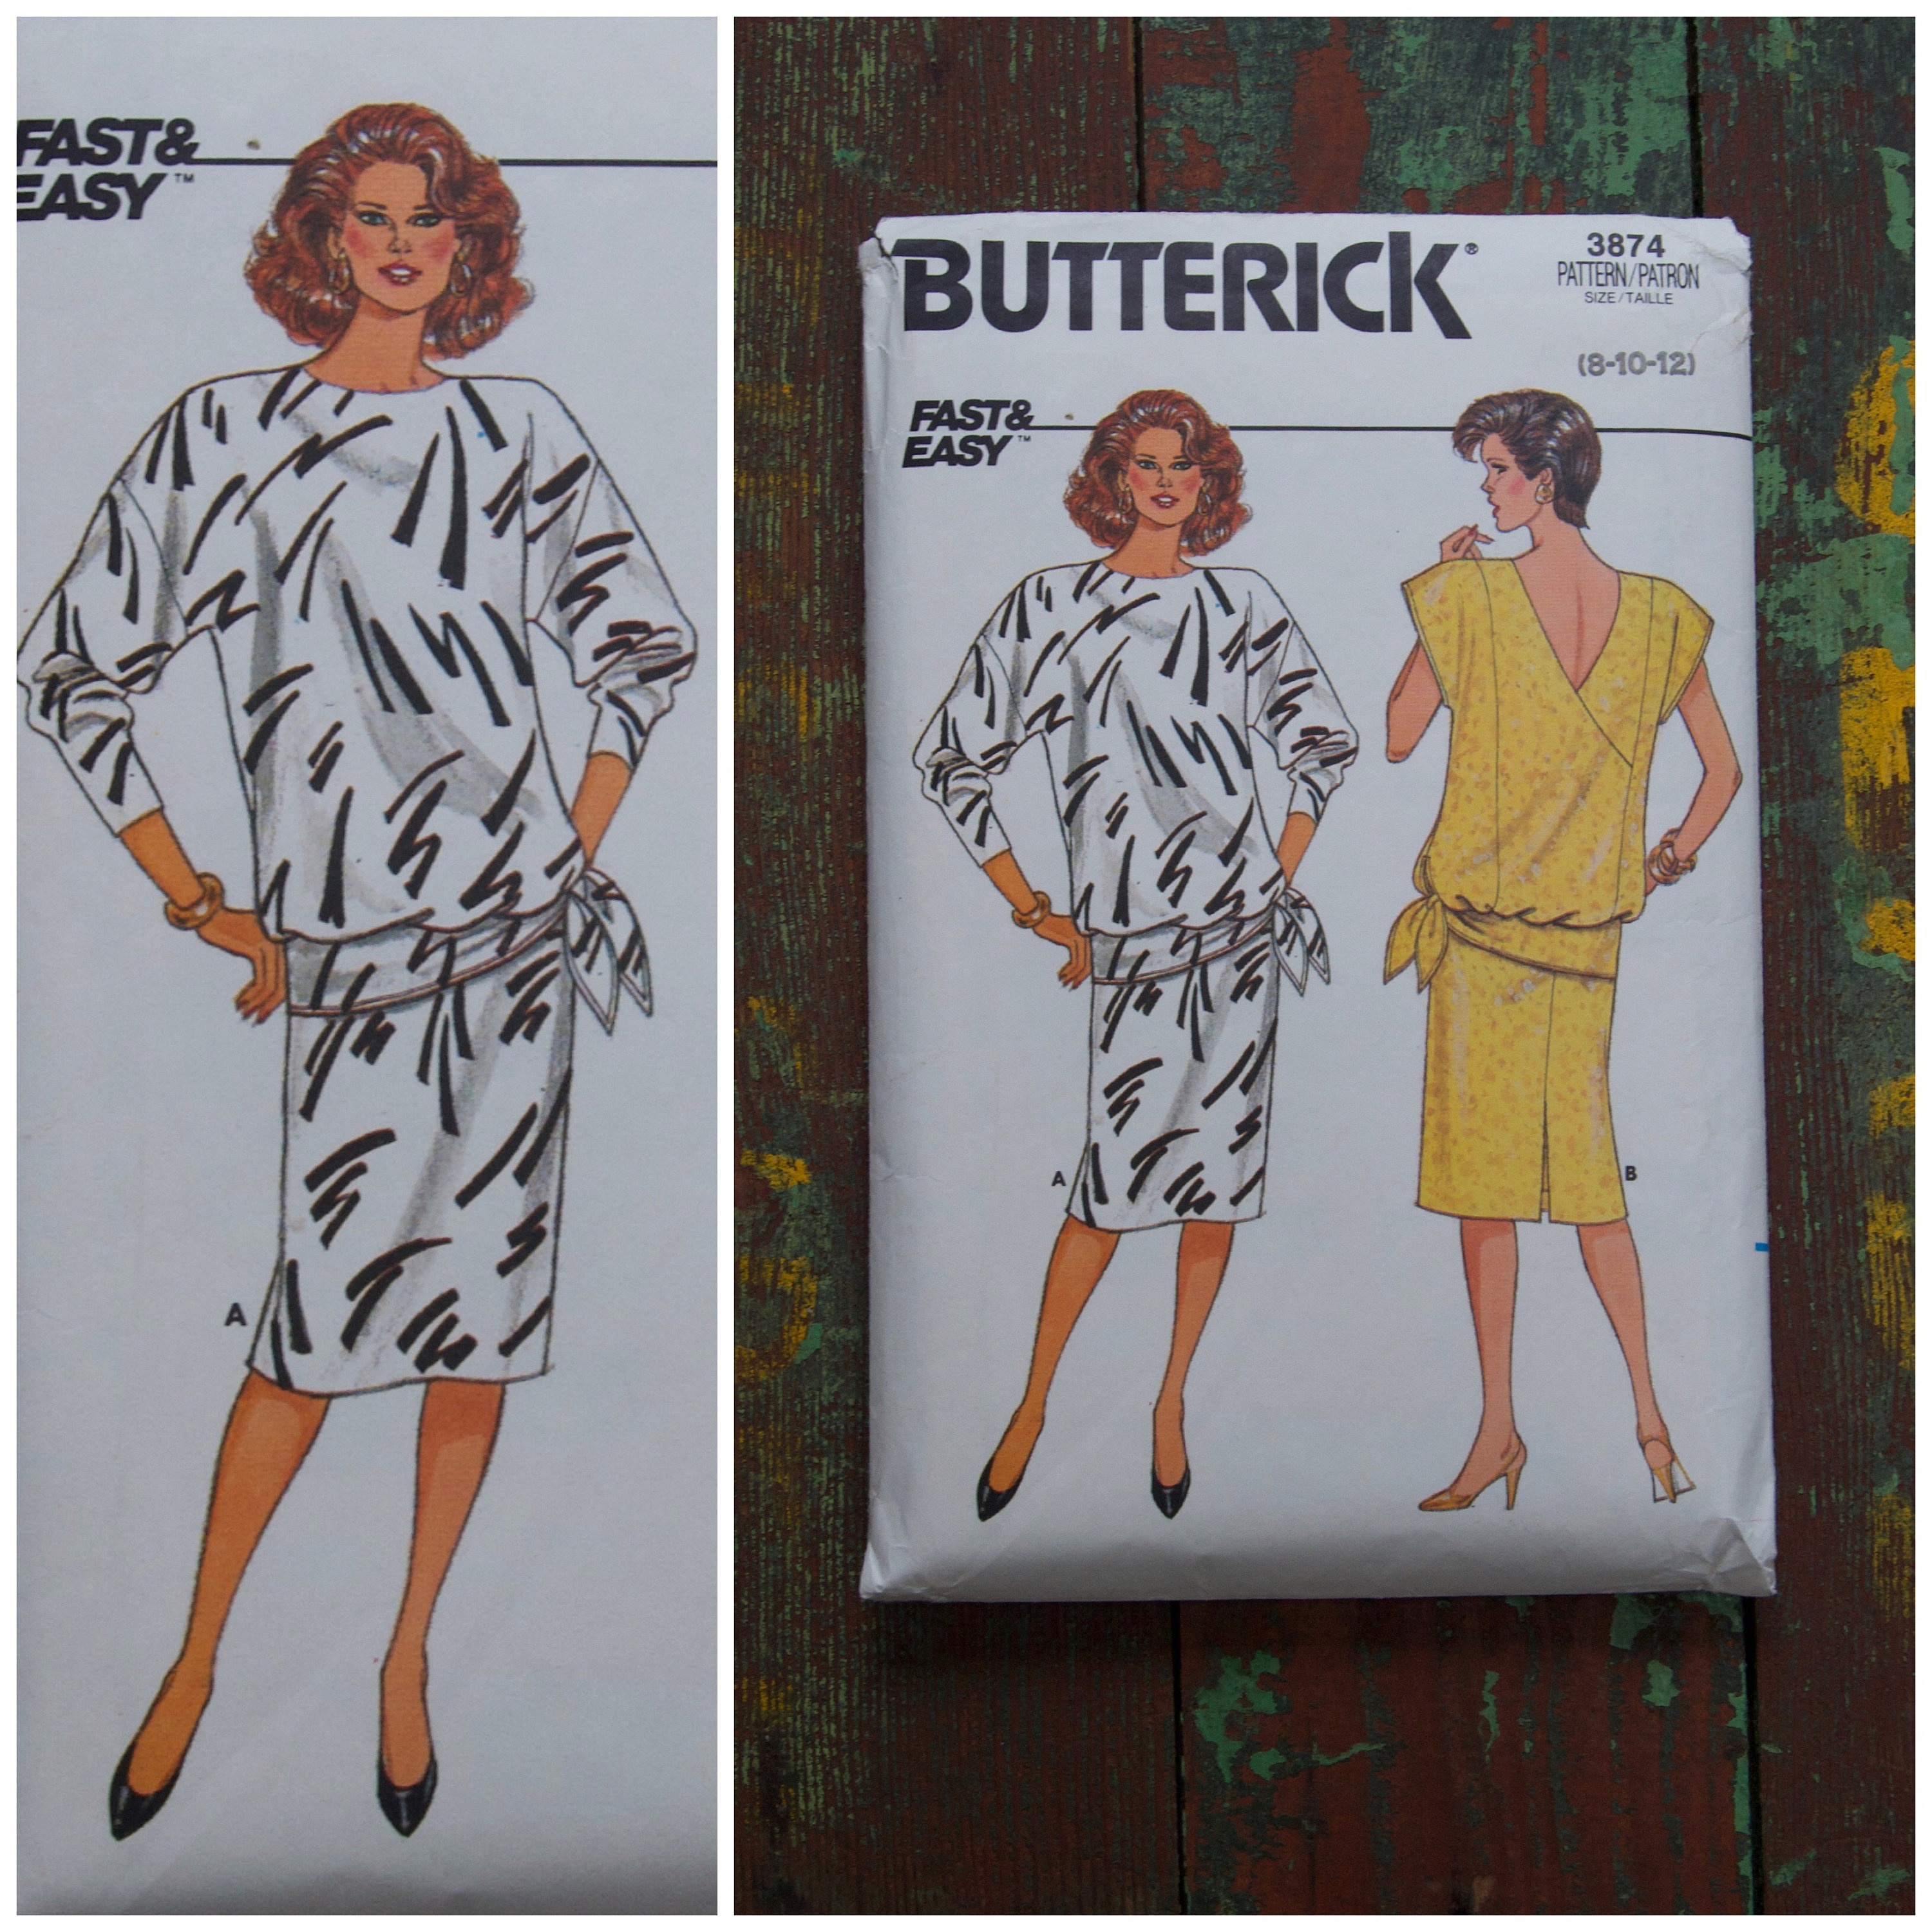 f99f40e10a7 Butterick Vintage Dress Patterns Uk - Gomes Weine AG